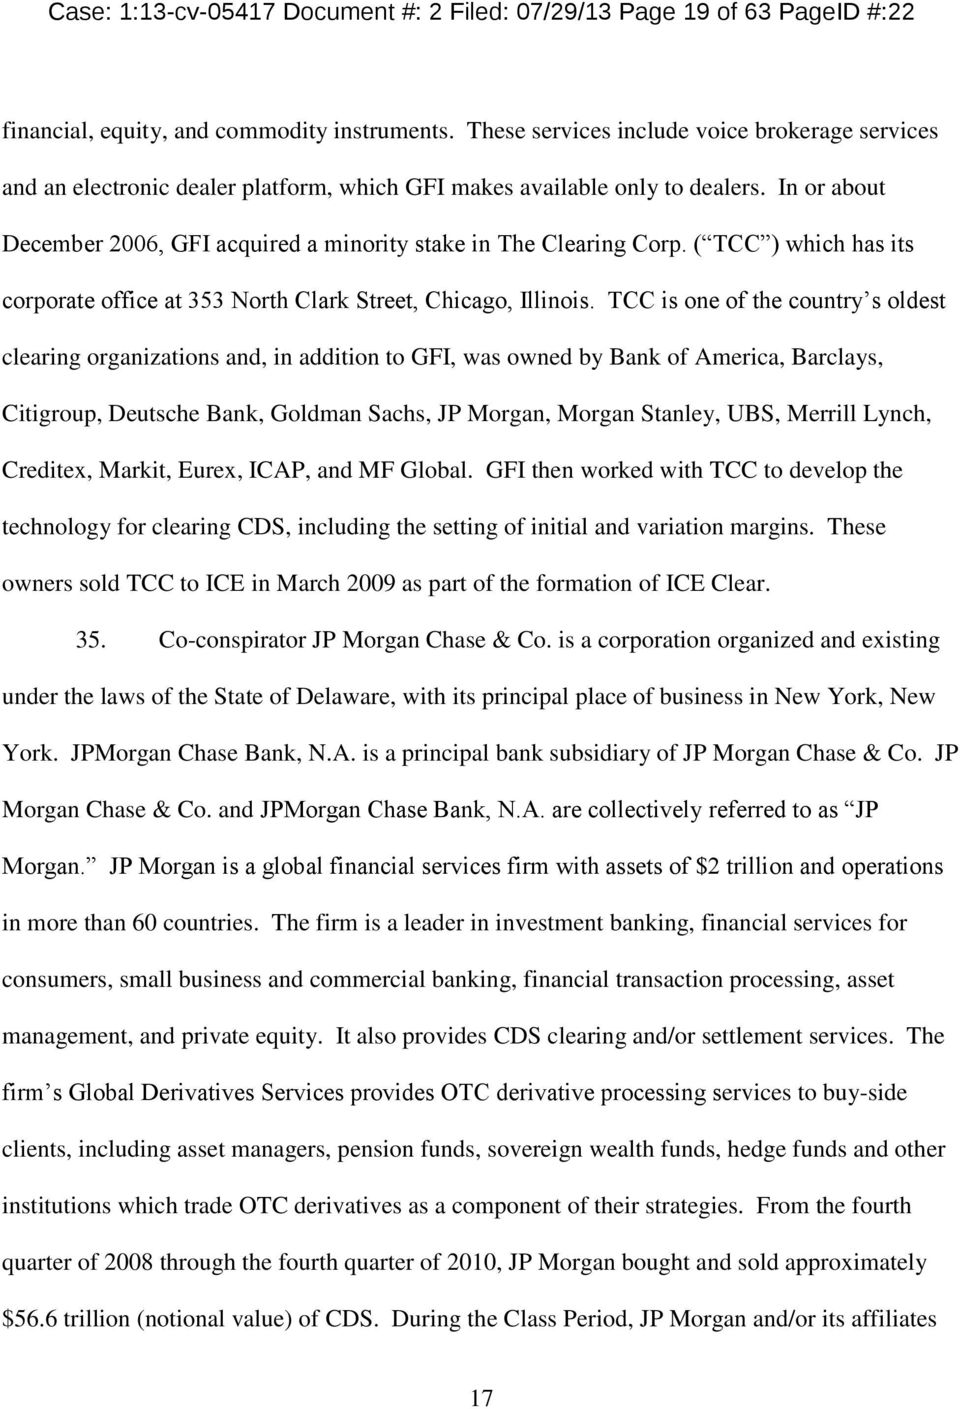 In or about December 2006, GFI acquired a minority stake in The Clearing Corp. ( TCC ) which has its corporate office at 353 North Clark Street, Chicago, Illinois.